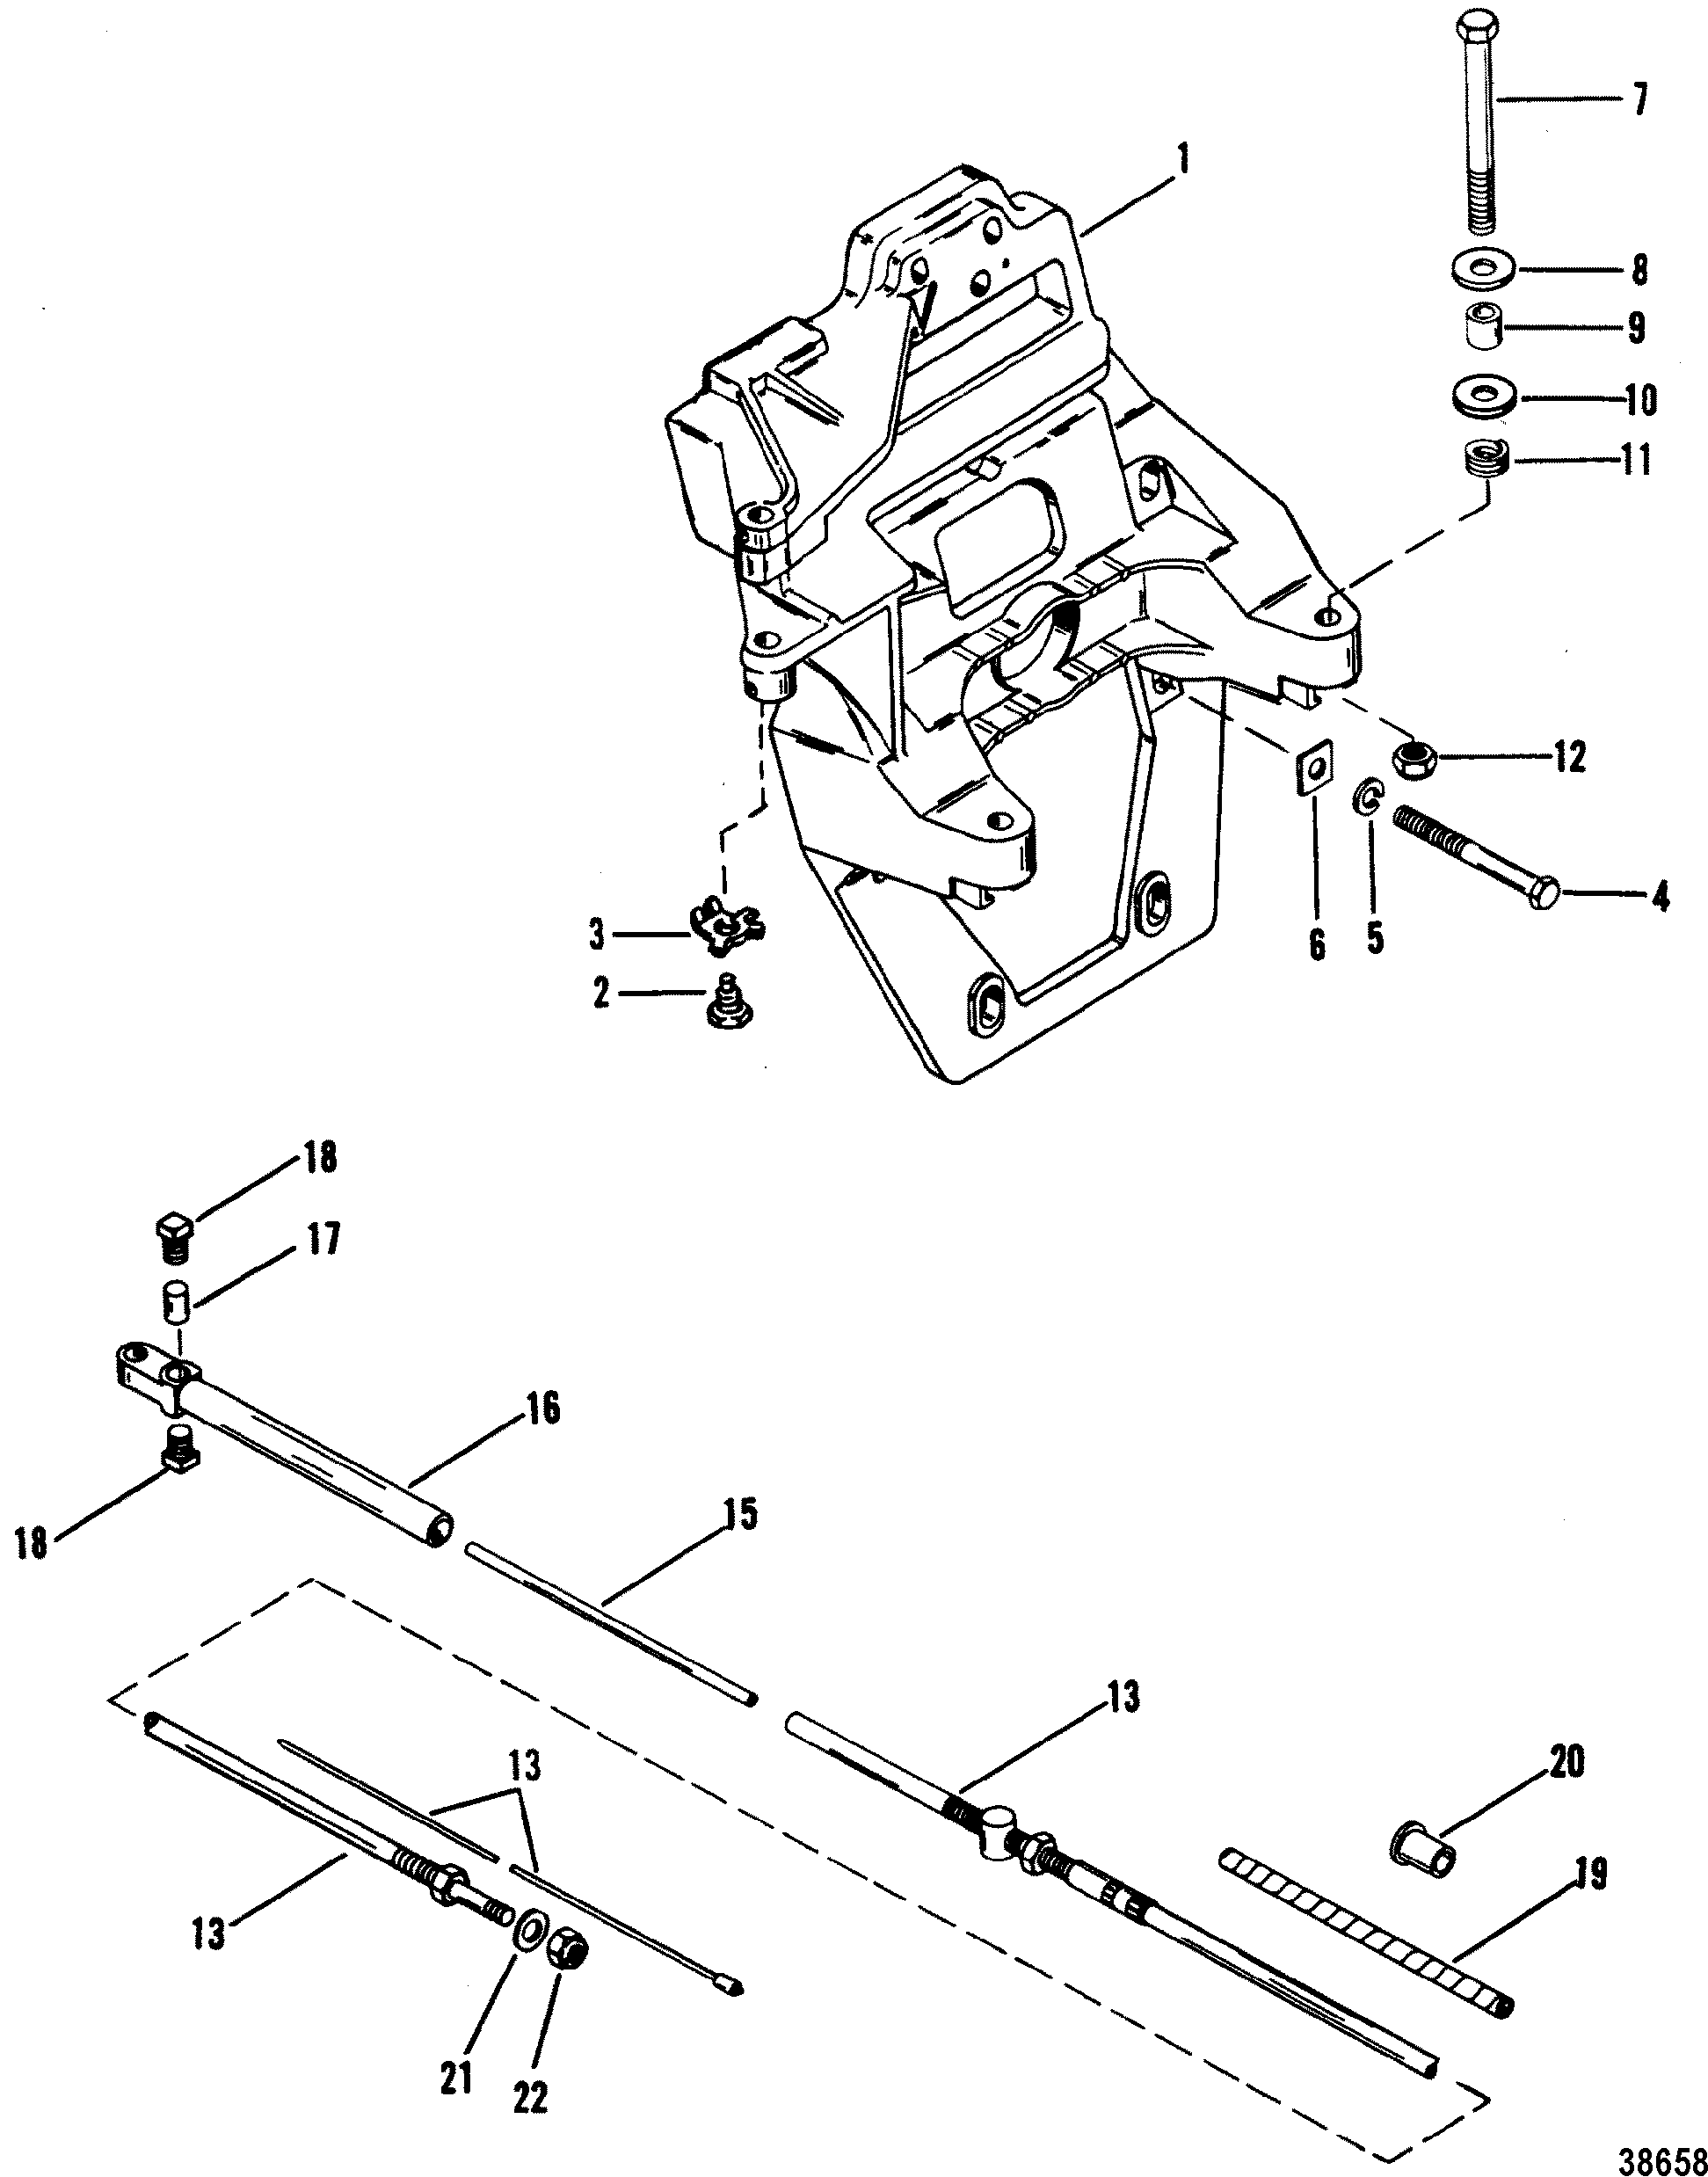 TRANSOM PLATE AND SHIFT CABLE FOR MERCRUISER BRAVO I/II